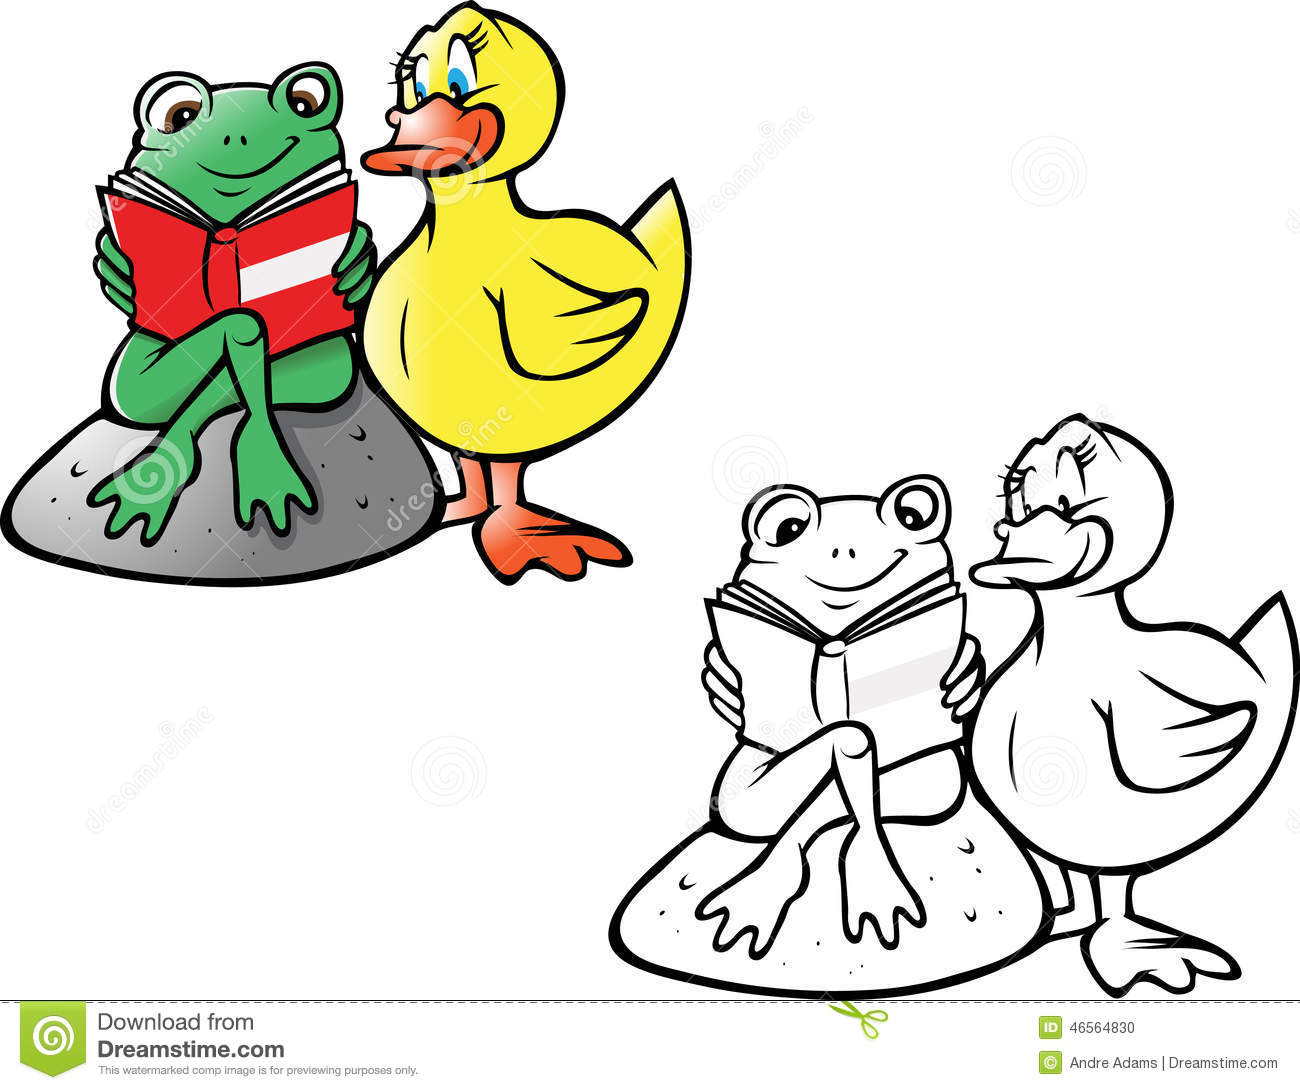 frog and duck reading coloring book stock illustration rh dreamstime com Mallard Duck Clip Art Elephant Clip Art